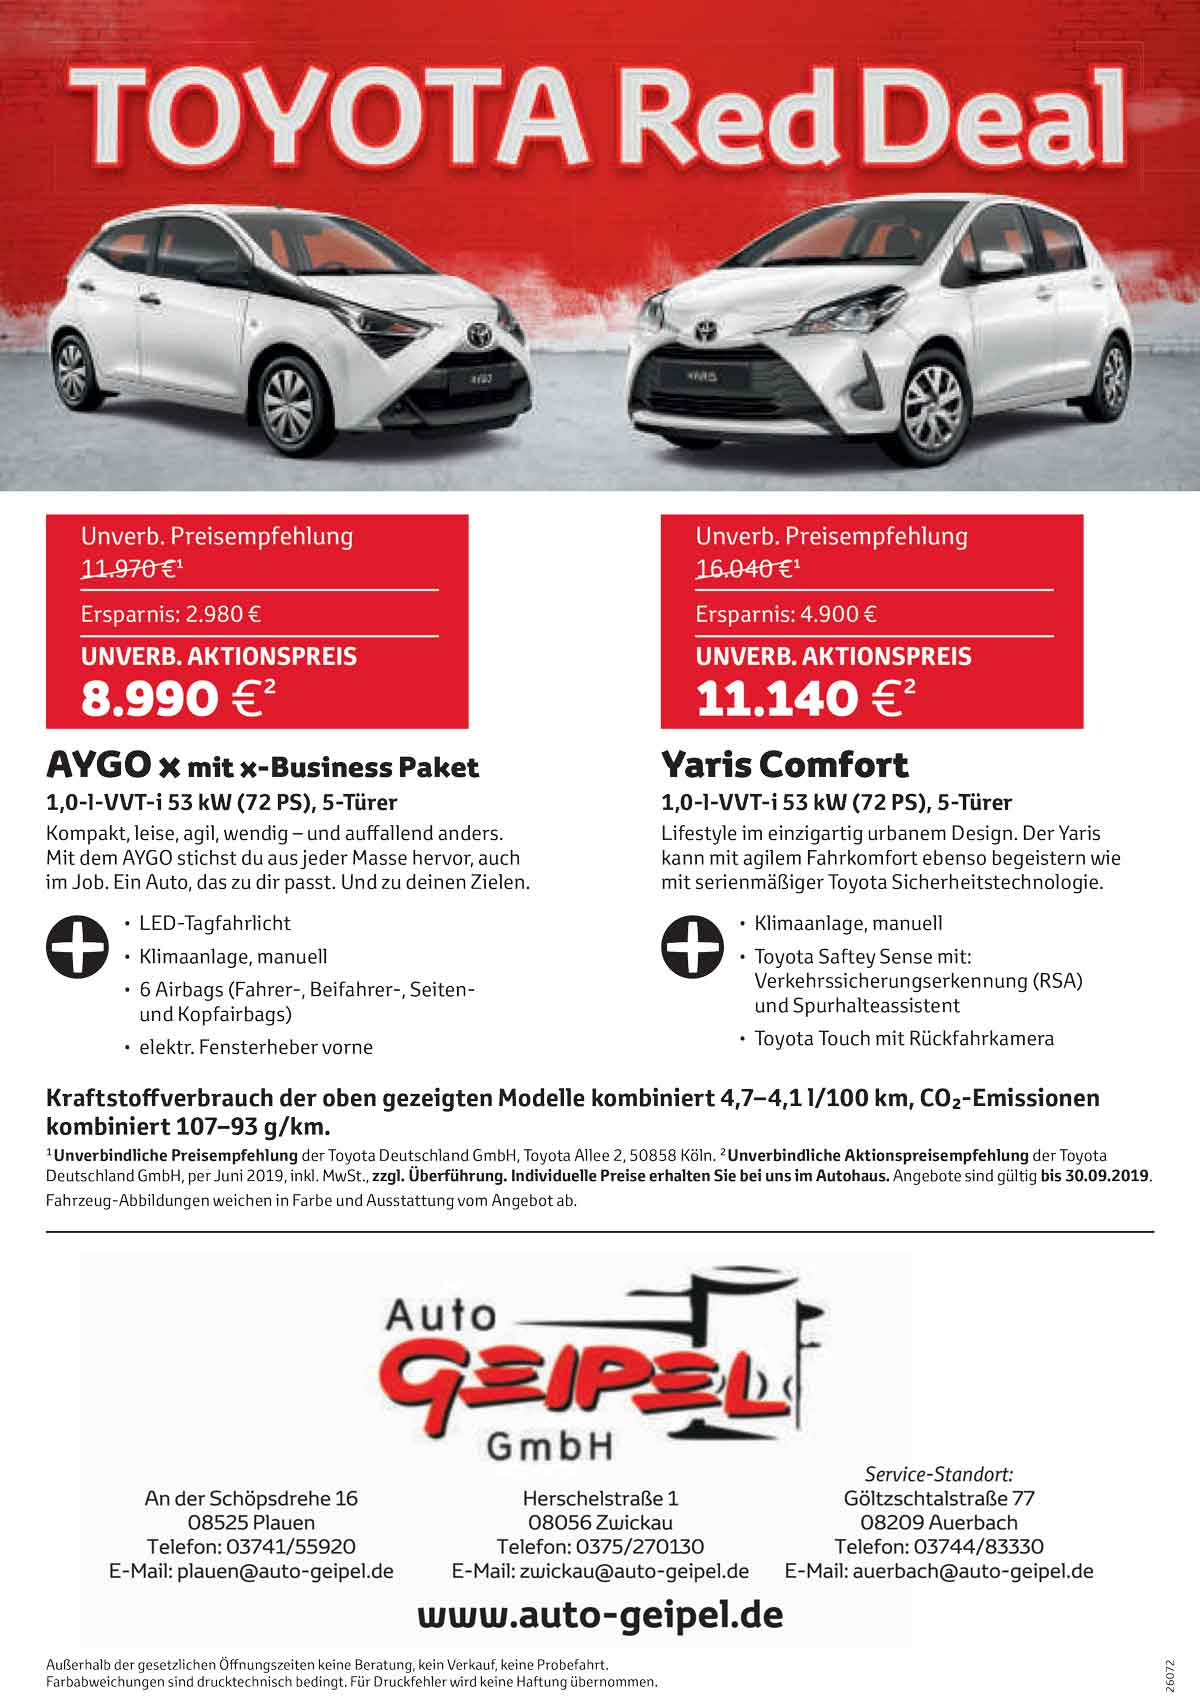 Toyota Red Deal Yaris Comfort 2019